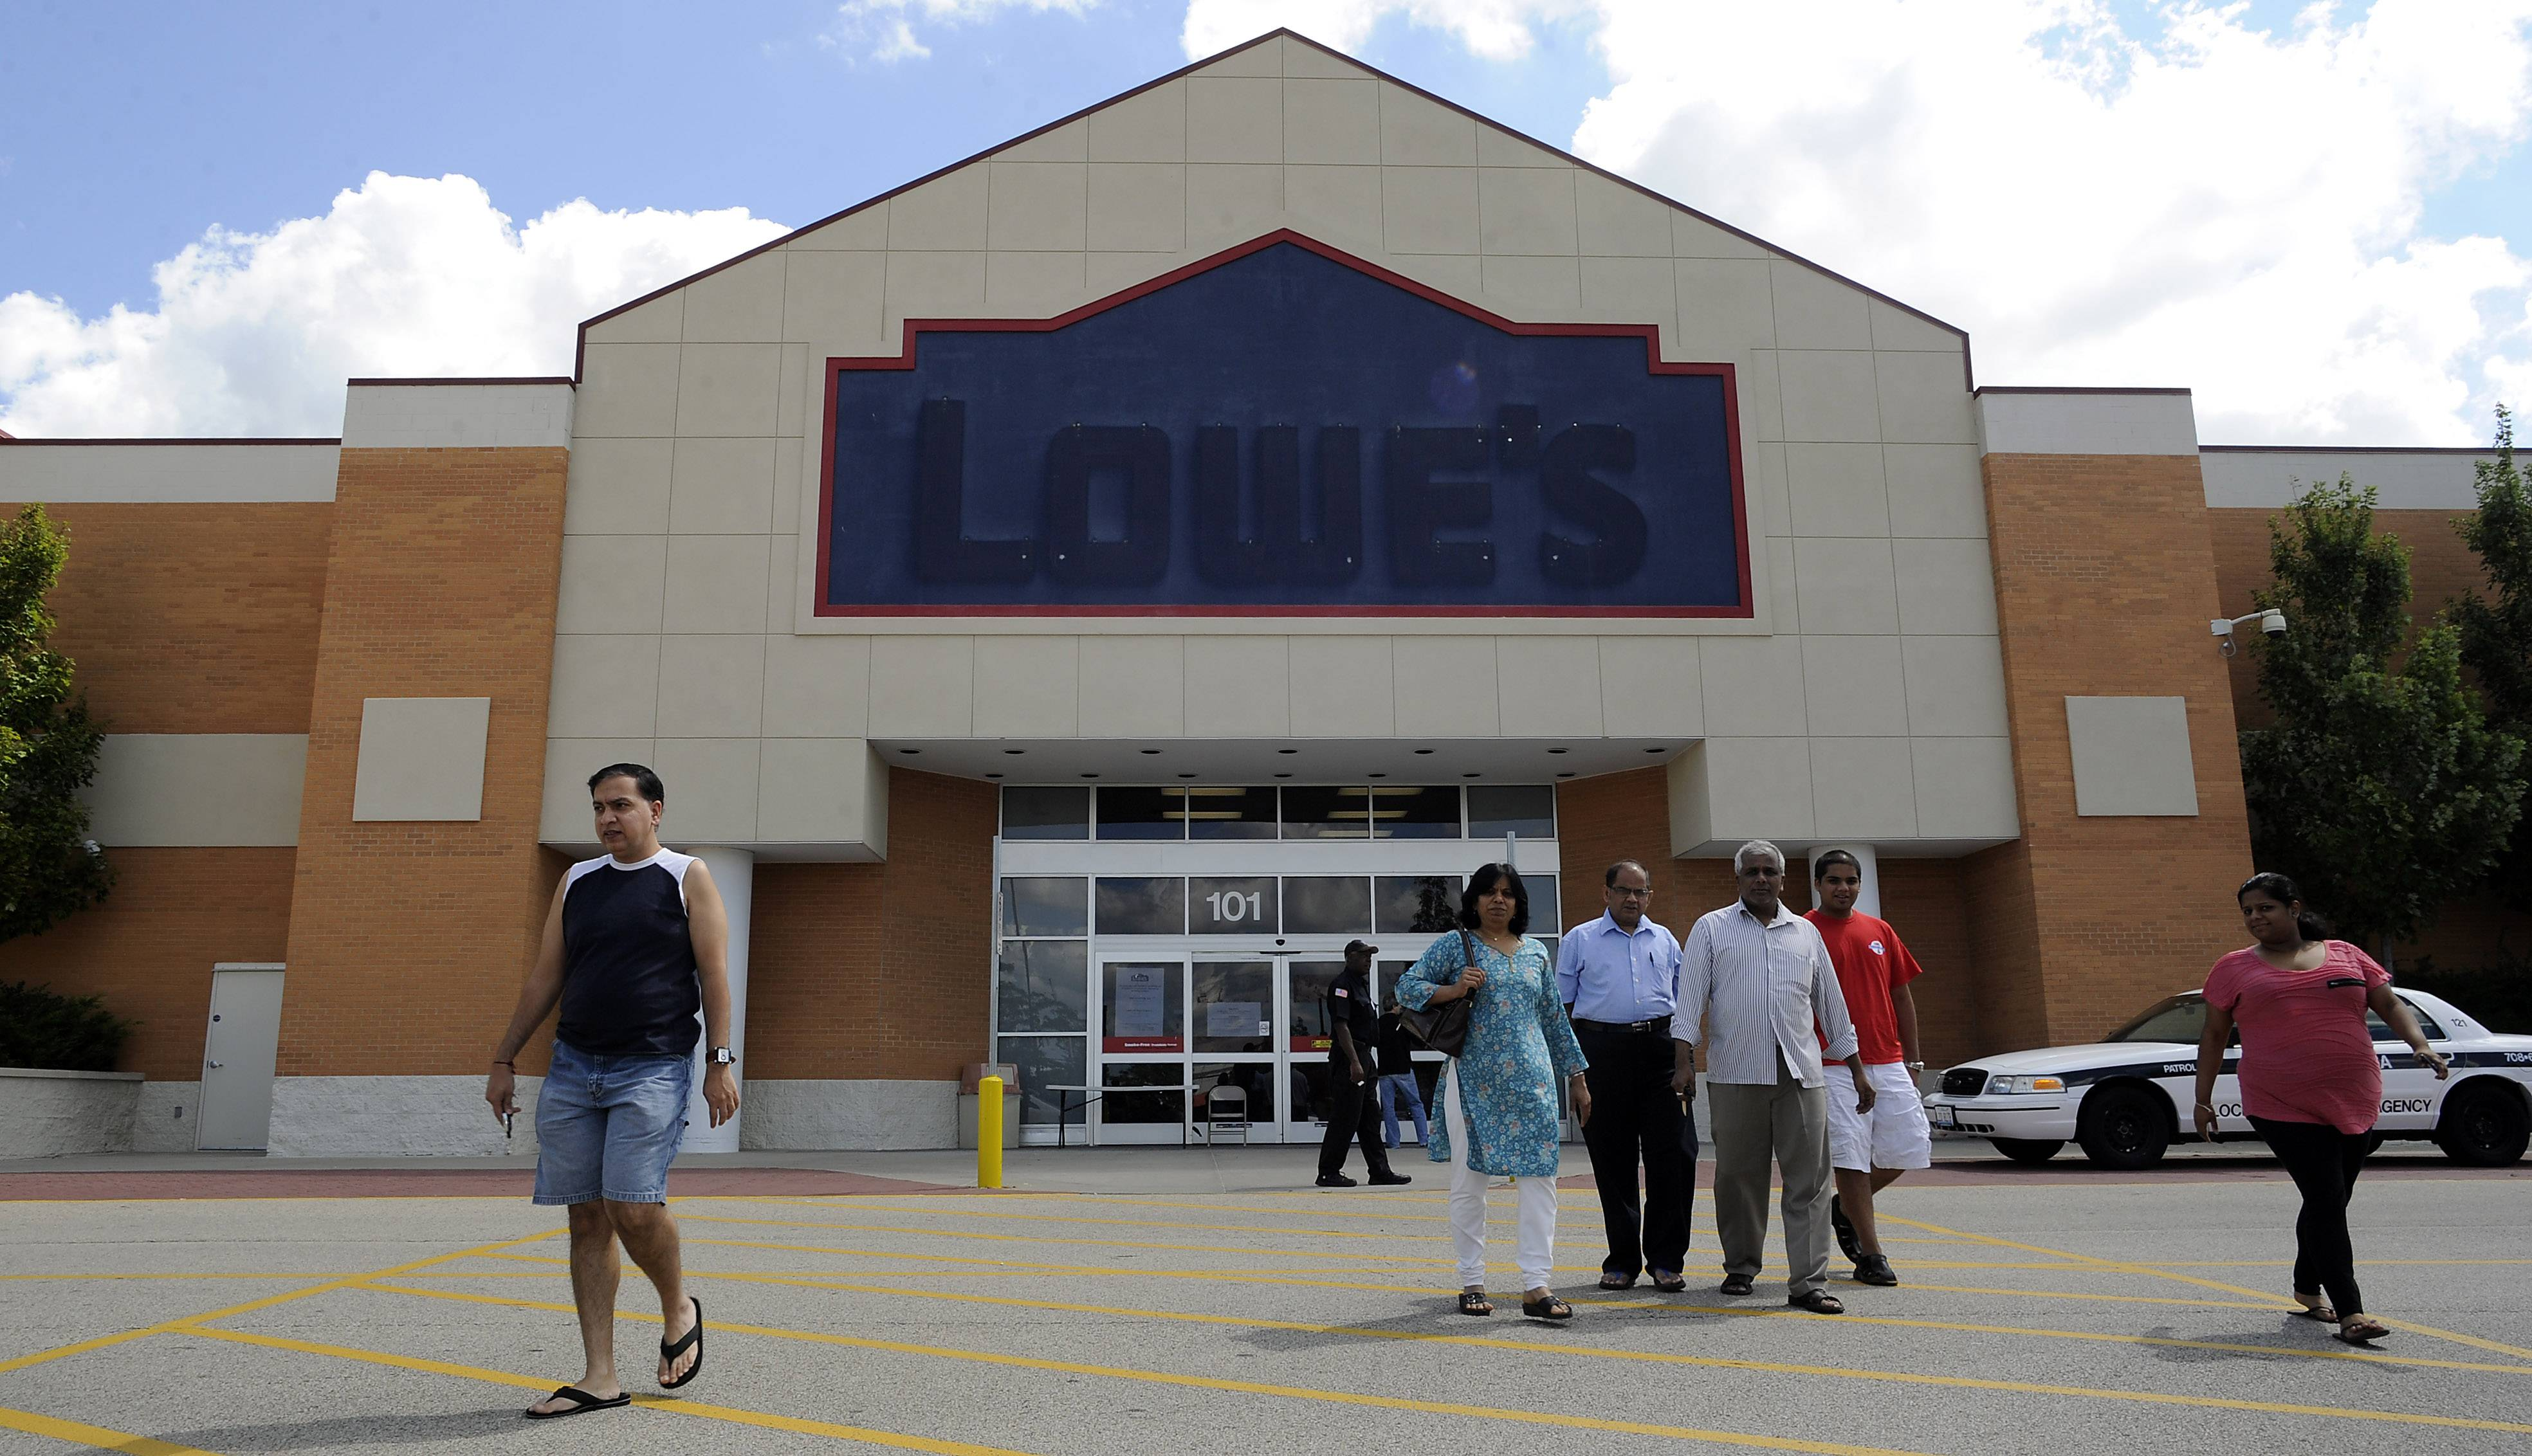 Would-be patrons are shocked and surprised as they walk away when they find that the Lowes store in Schaumburg closed its' doors over the weekend.